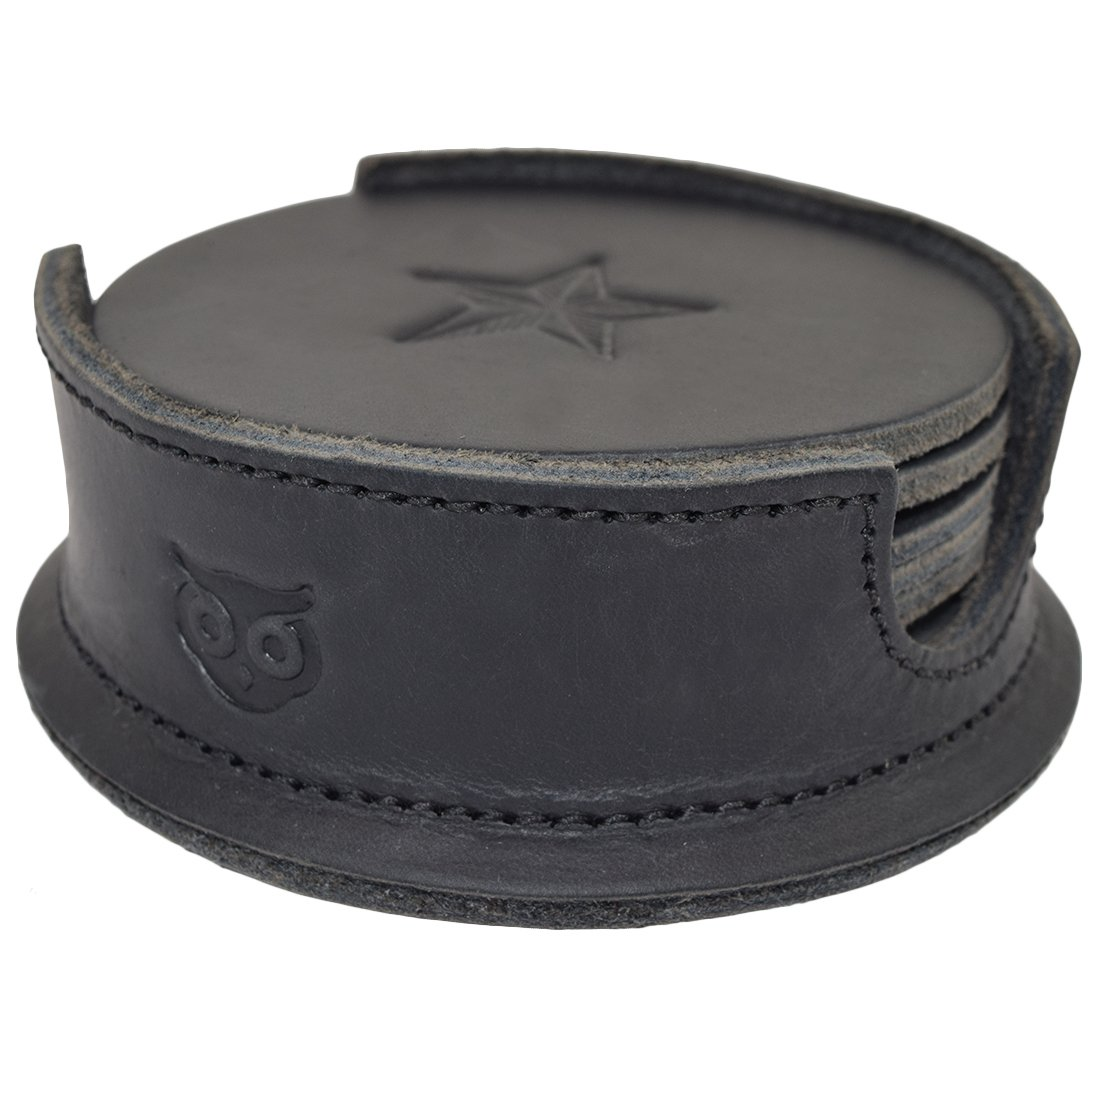 Durable Thick Leather Moon, Star and Heart Coasters (6-Pack) Handmade by Hide & Drink :: Charcoal Black